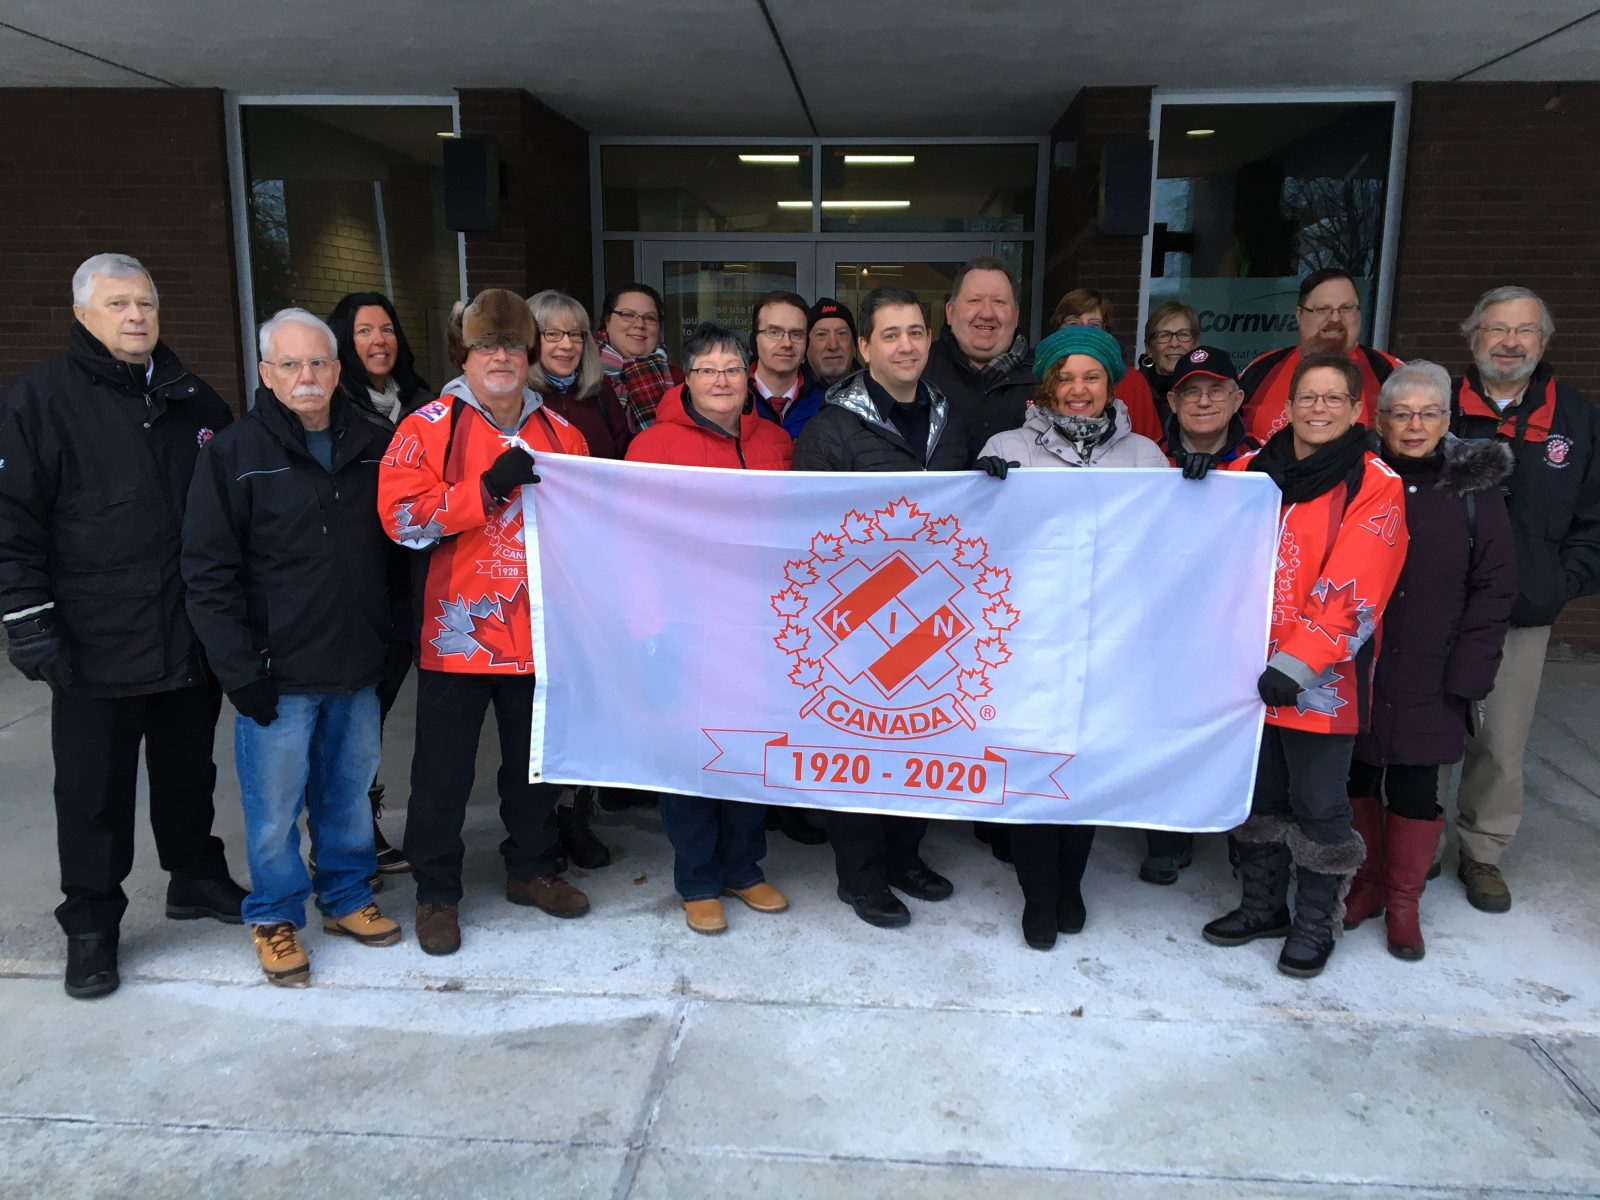 Kinsmen support community throughout the week